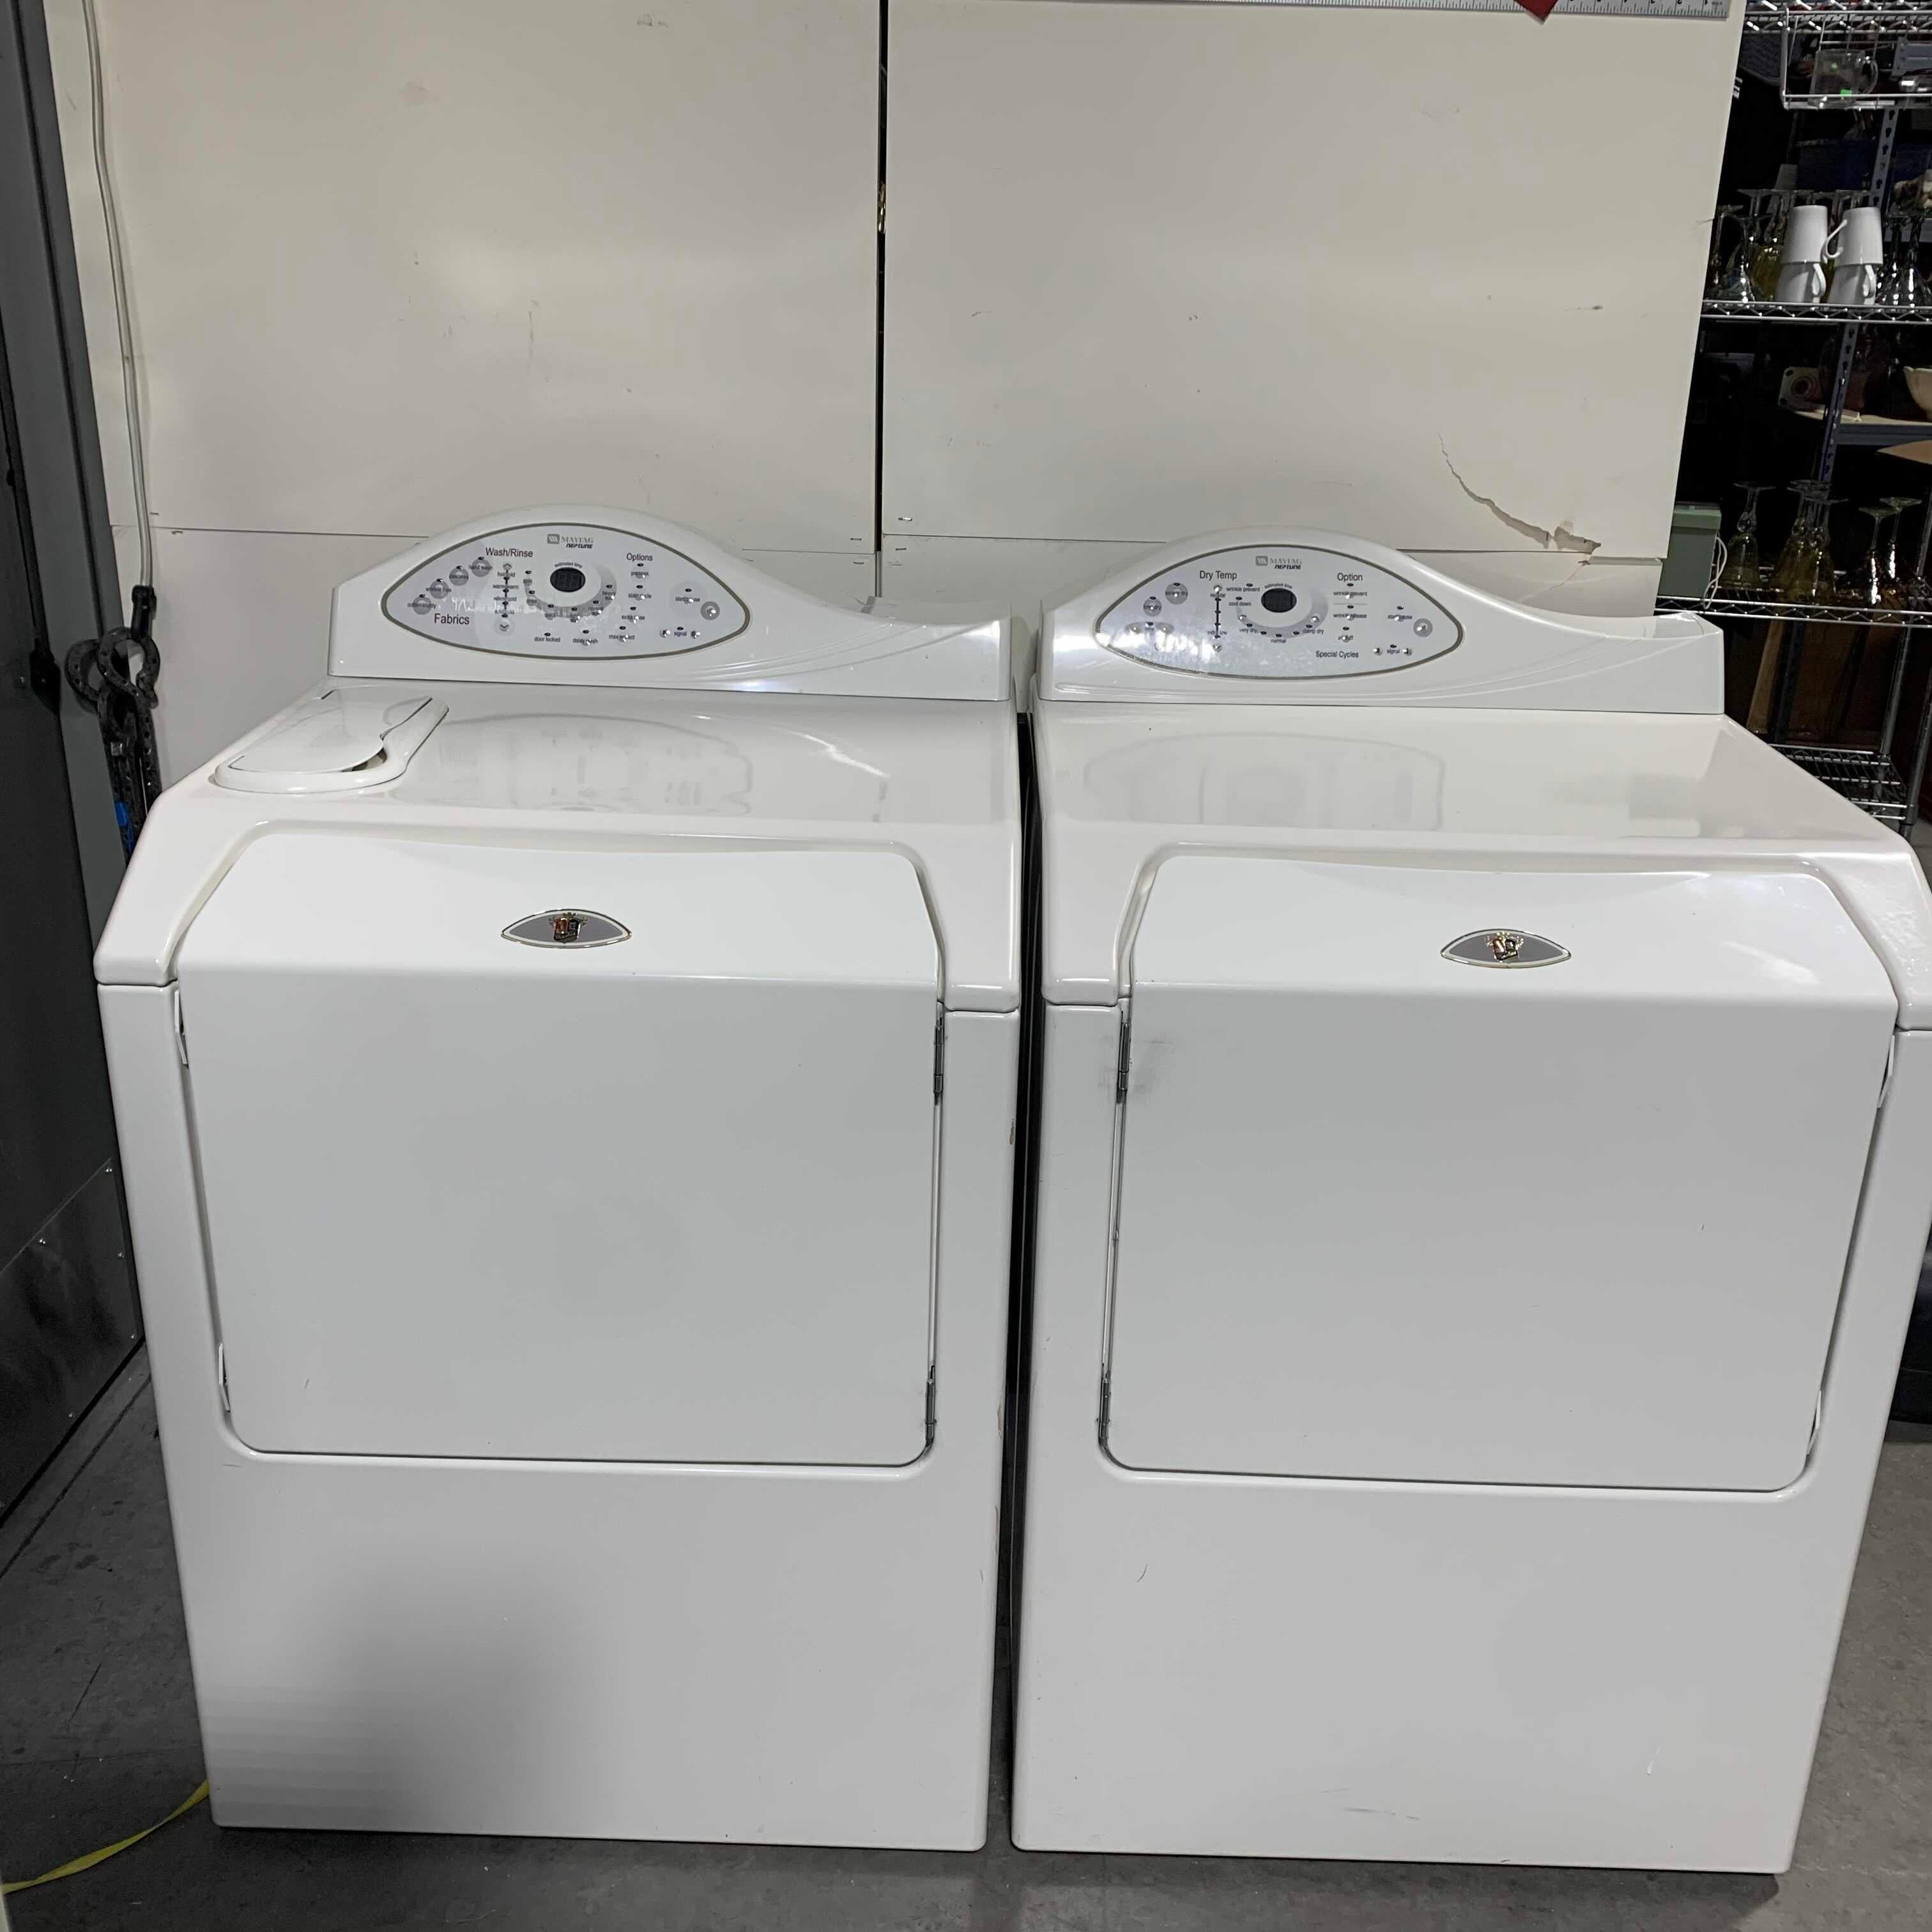 "54 1/2"" x 27 1/2"" x 43"" Maytag Neptune Front Loading Washer & Gas Dryer SET"